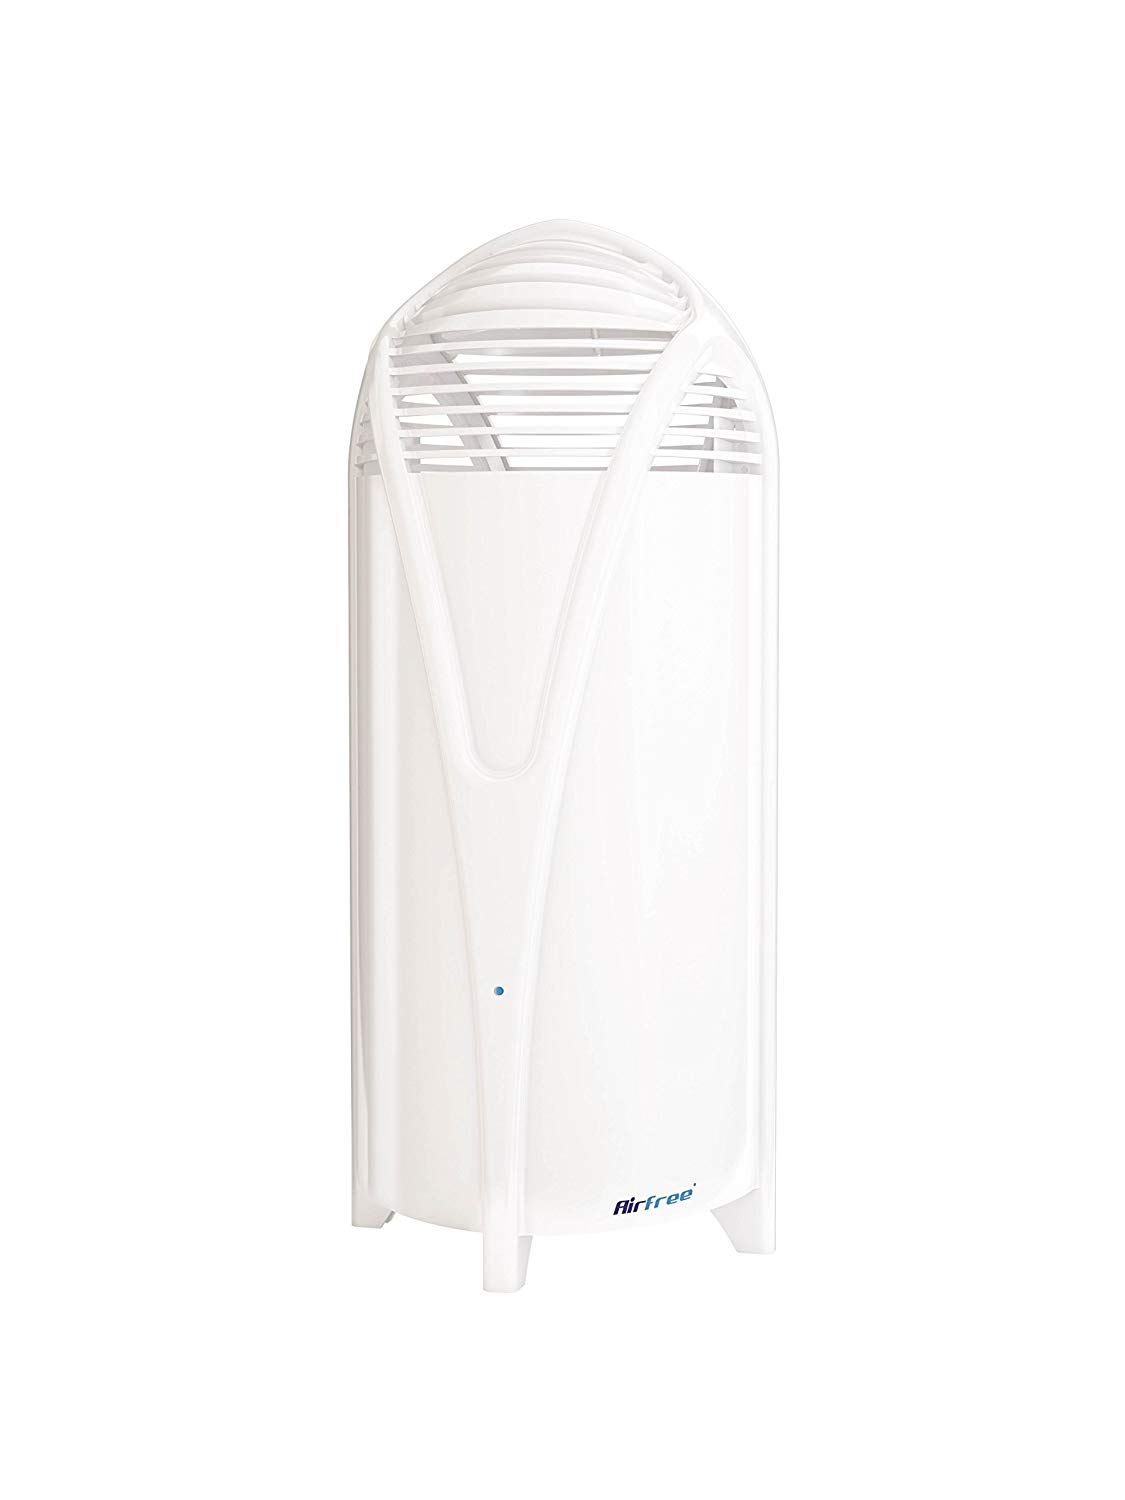 Best Filterless Air Purifier - #2 Airfree T800